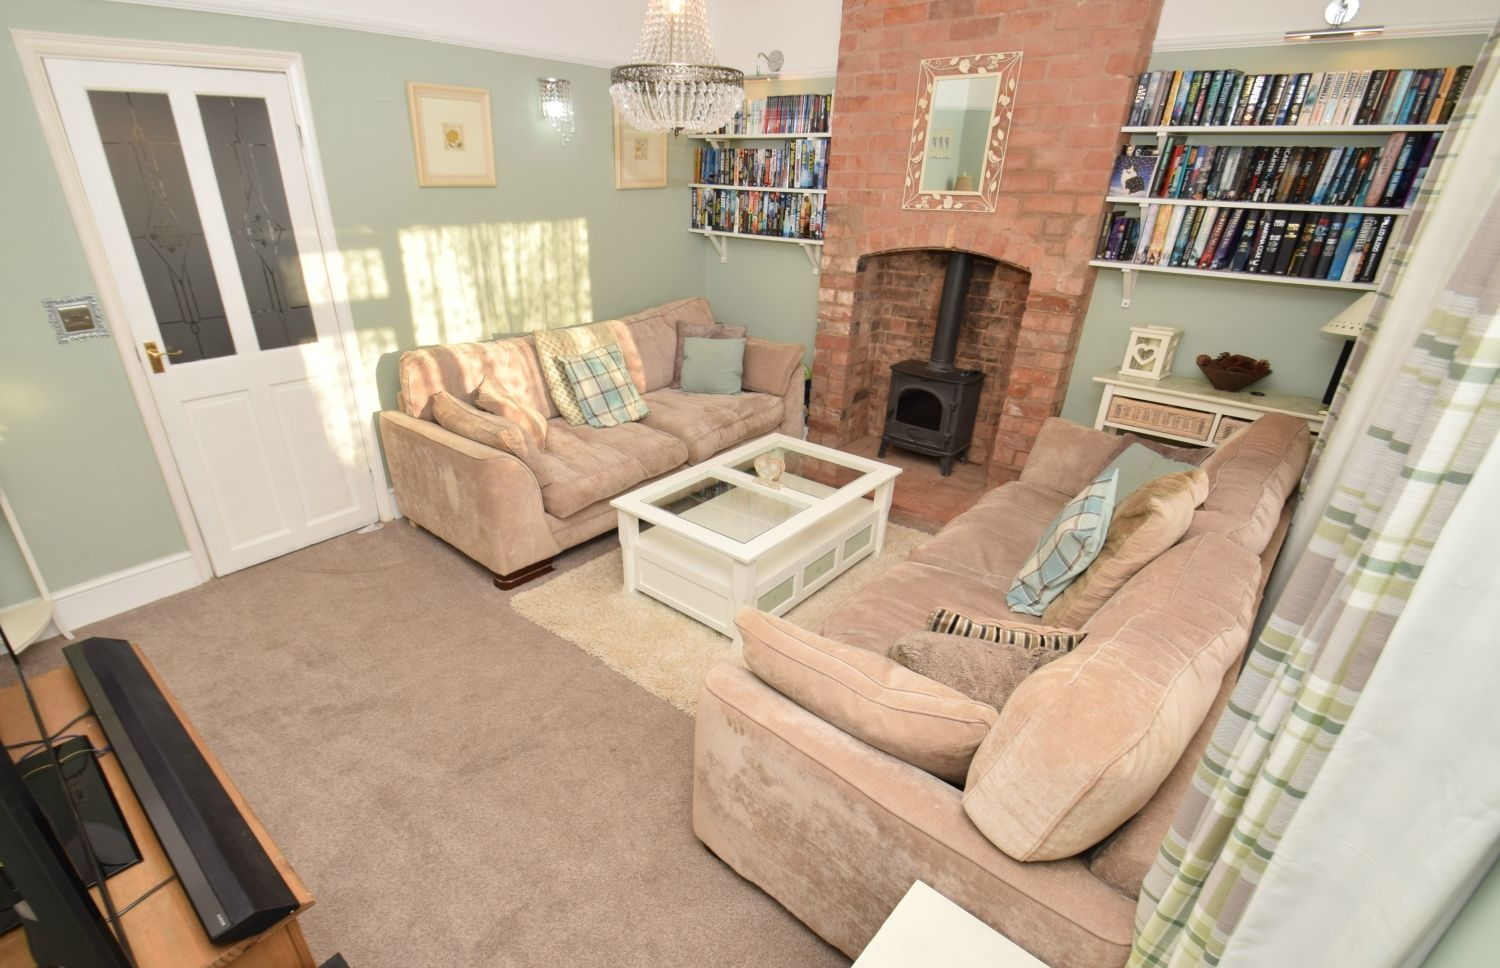 4 bed semi-detached for sale in Upland Grove, Bromsgrove, B61  - Property Image 3